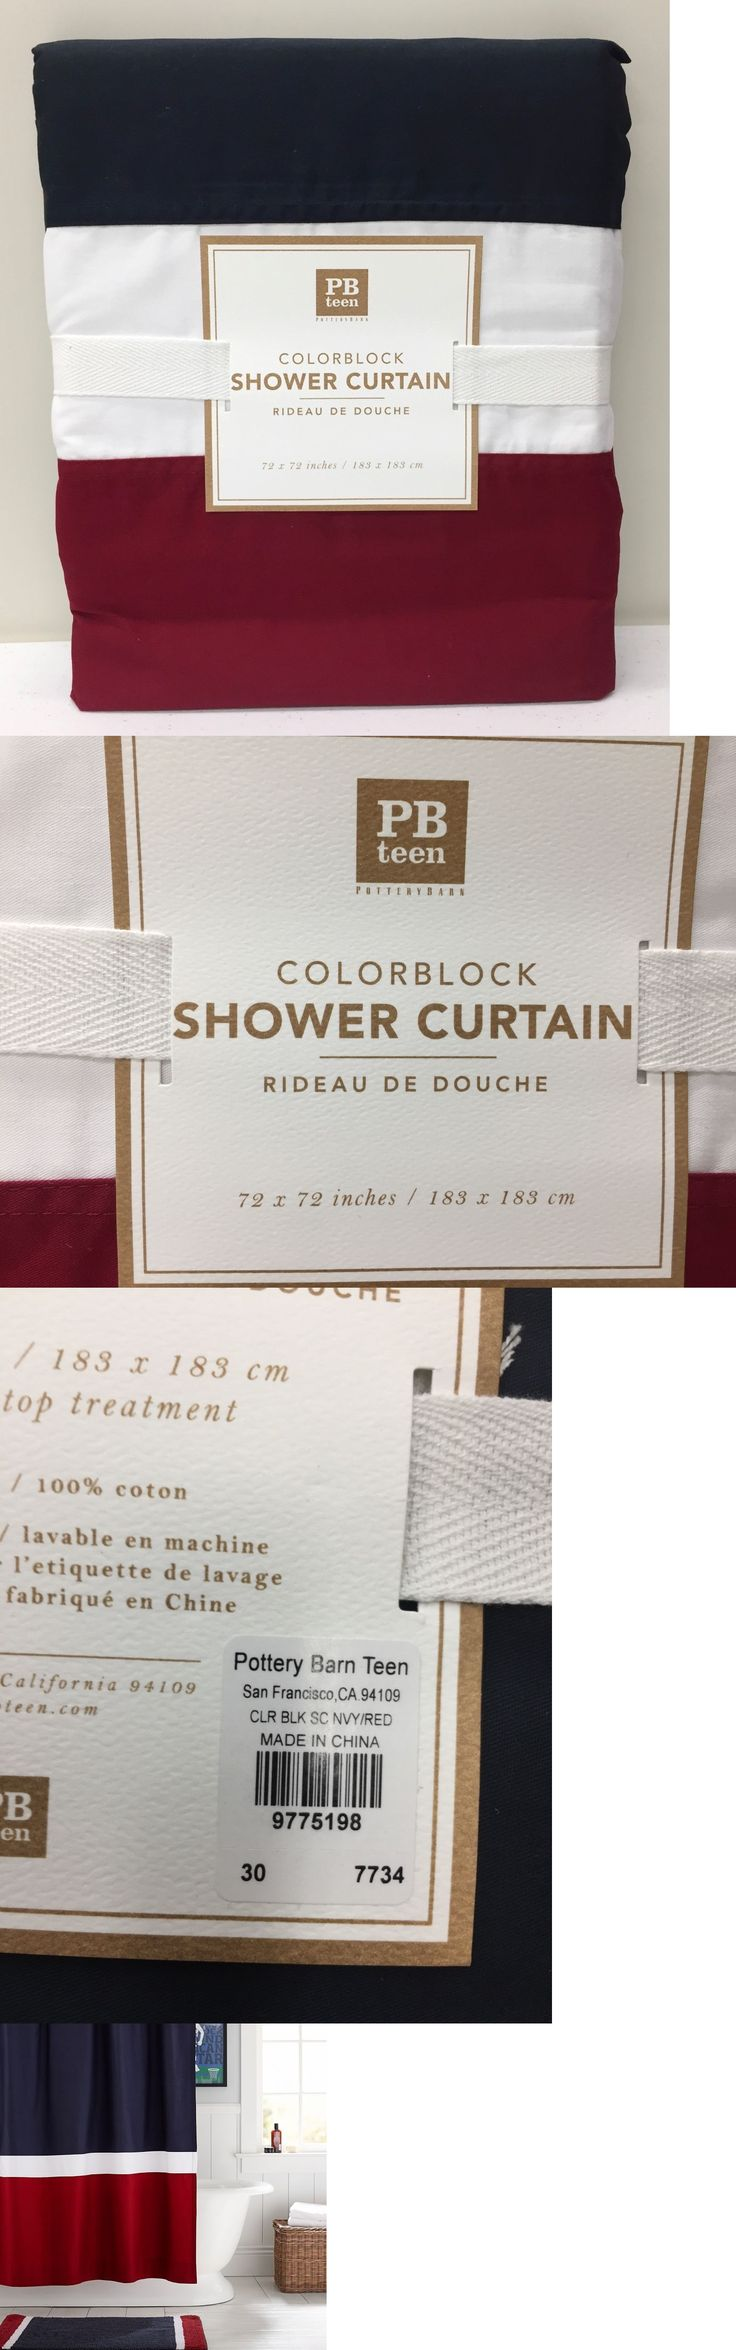 Bath 115624: New Pottery Barn Teen Color Block Shower Curtain, Navy Red White -> BUY IT NOW ONLY: $39.99 on eBay!